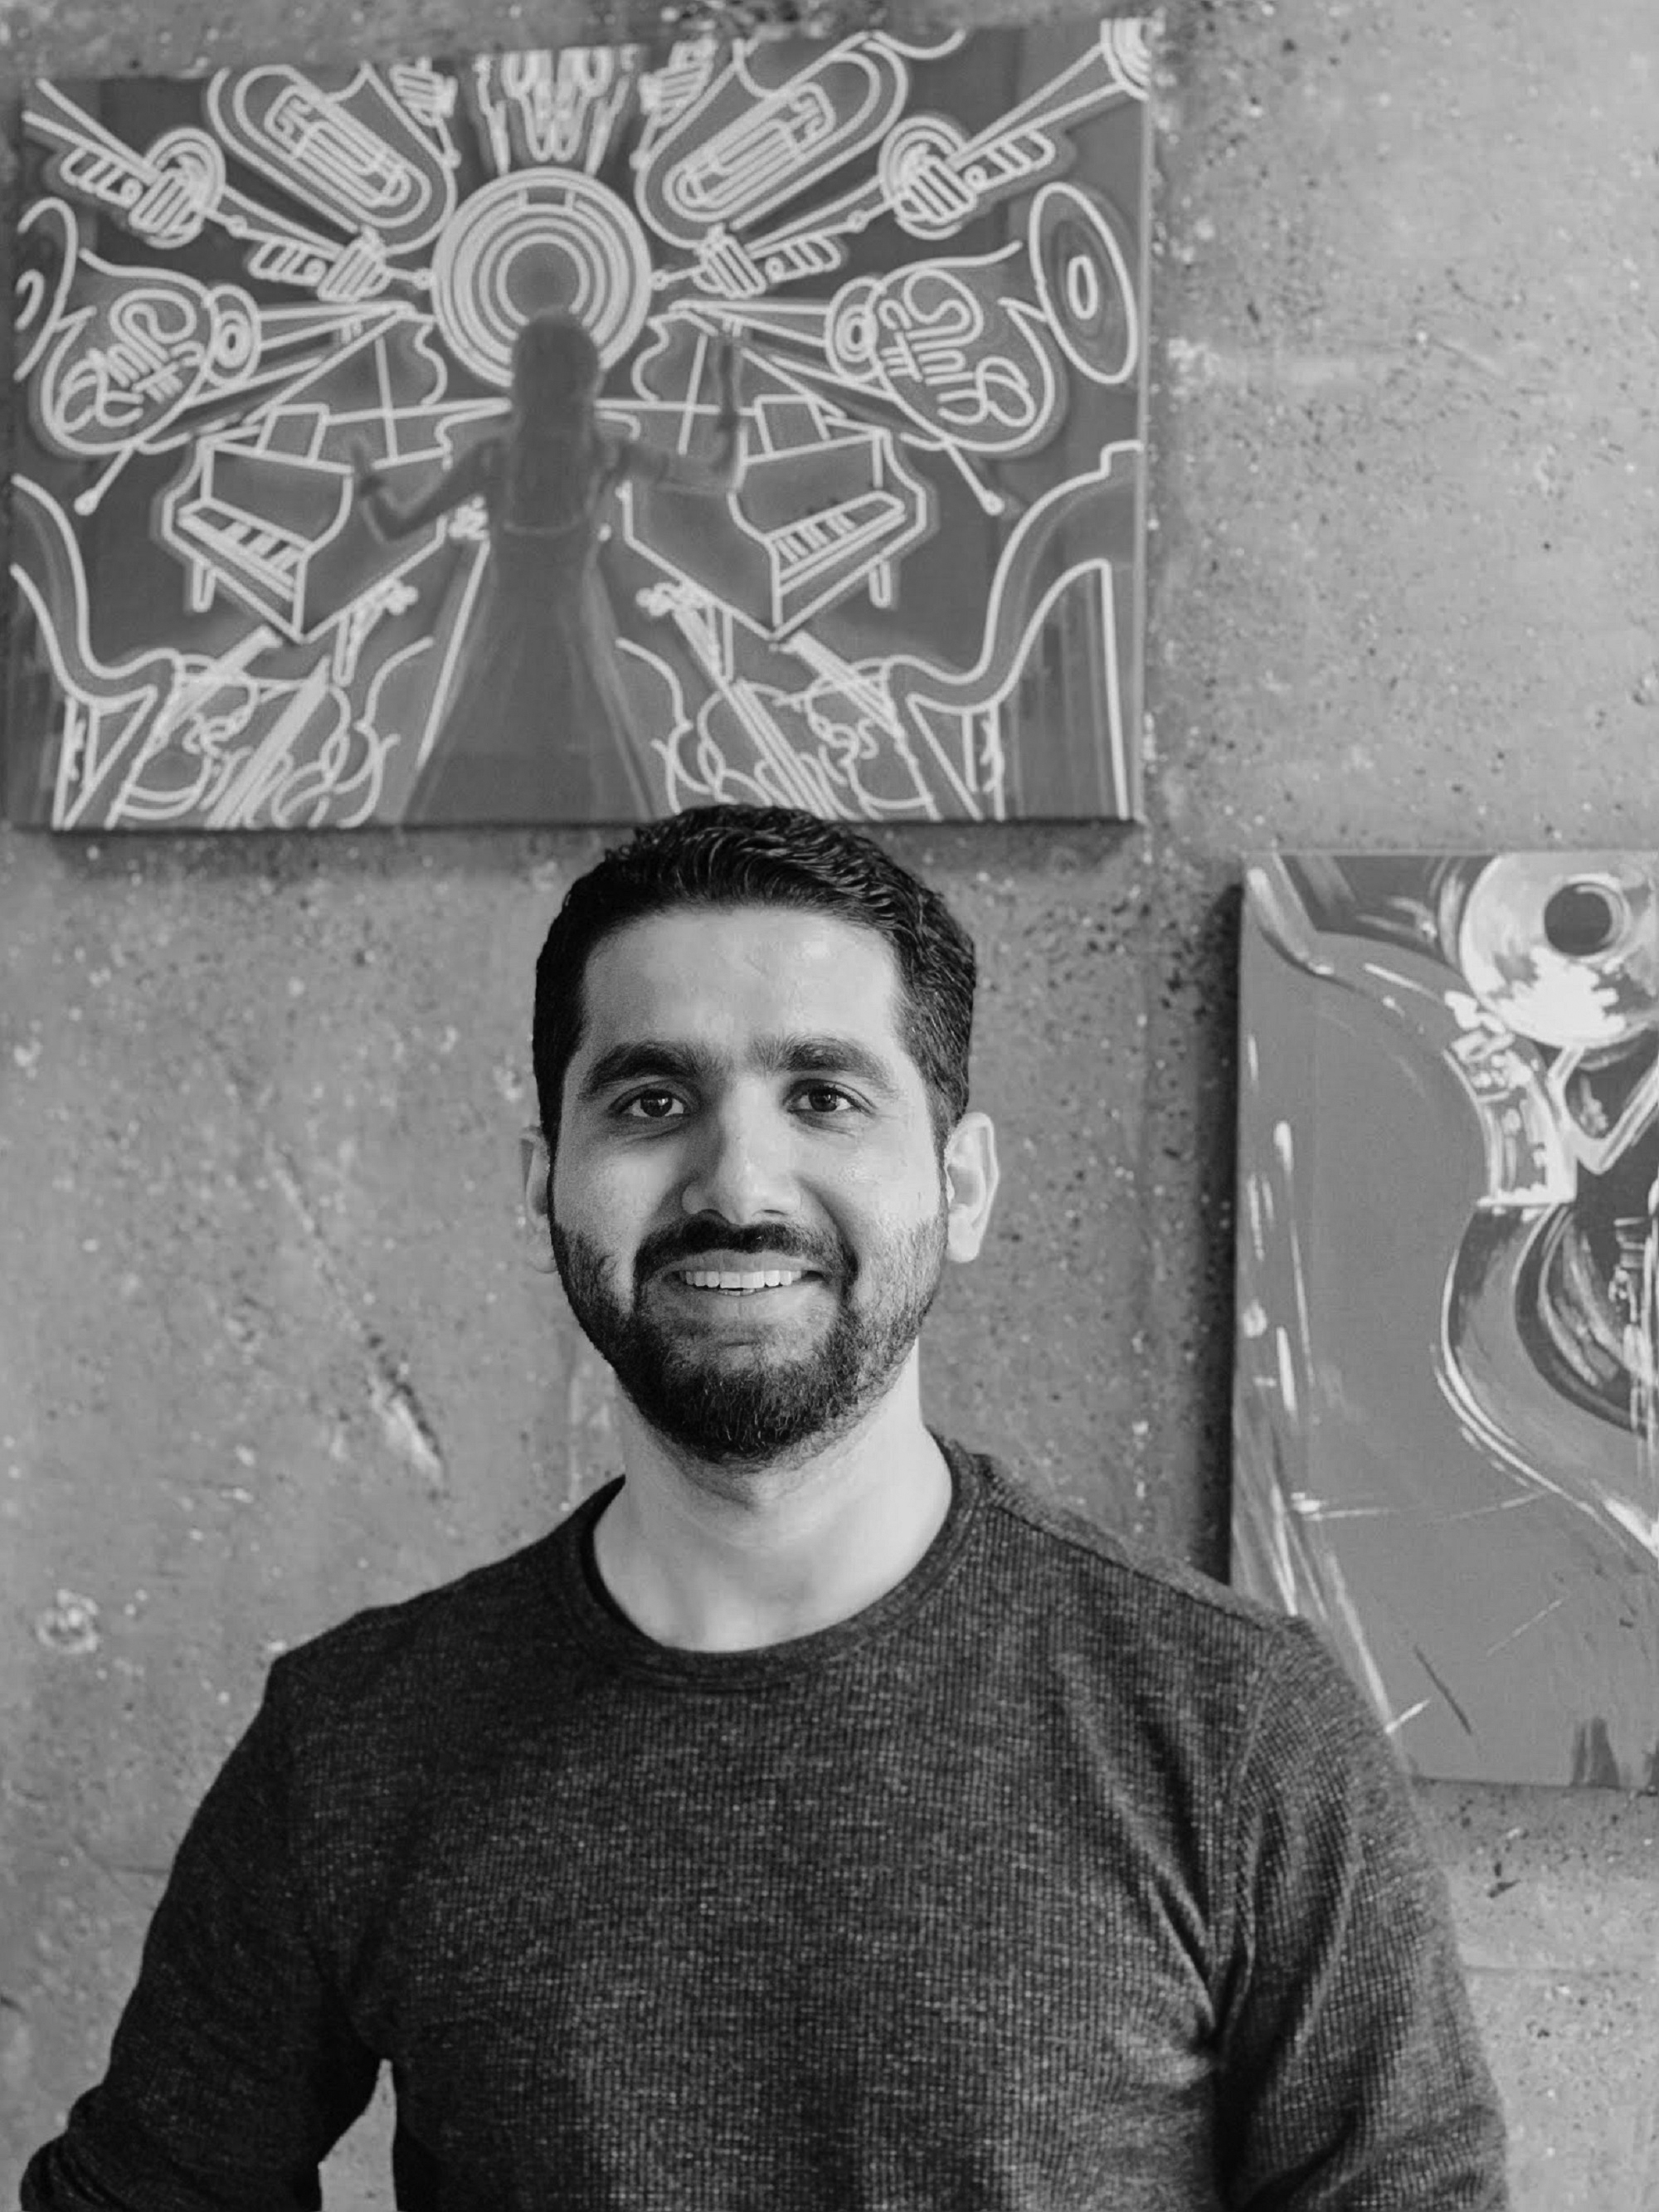 Akshat Harbola- Market Strategy & Operations,Spotify India, He is responsible for strategic planning and cross functional operating rhythm for the business.